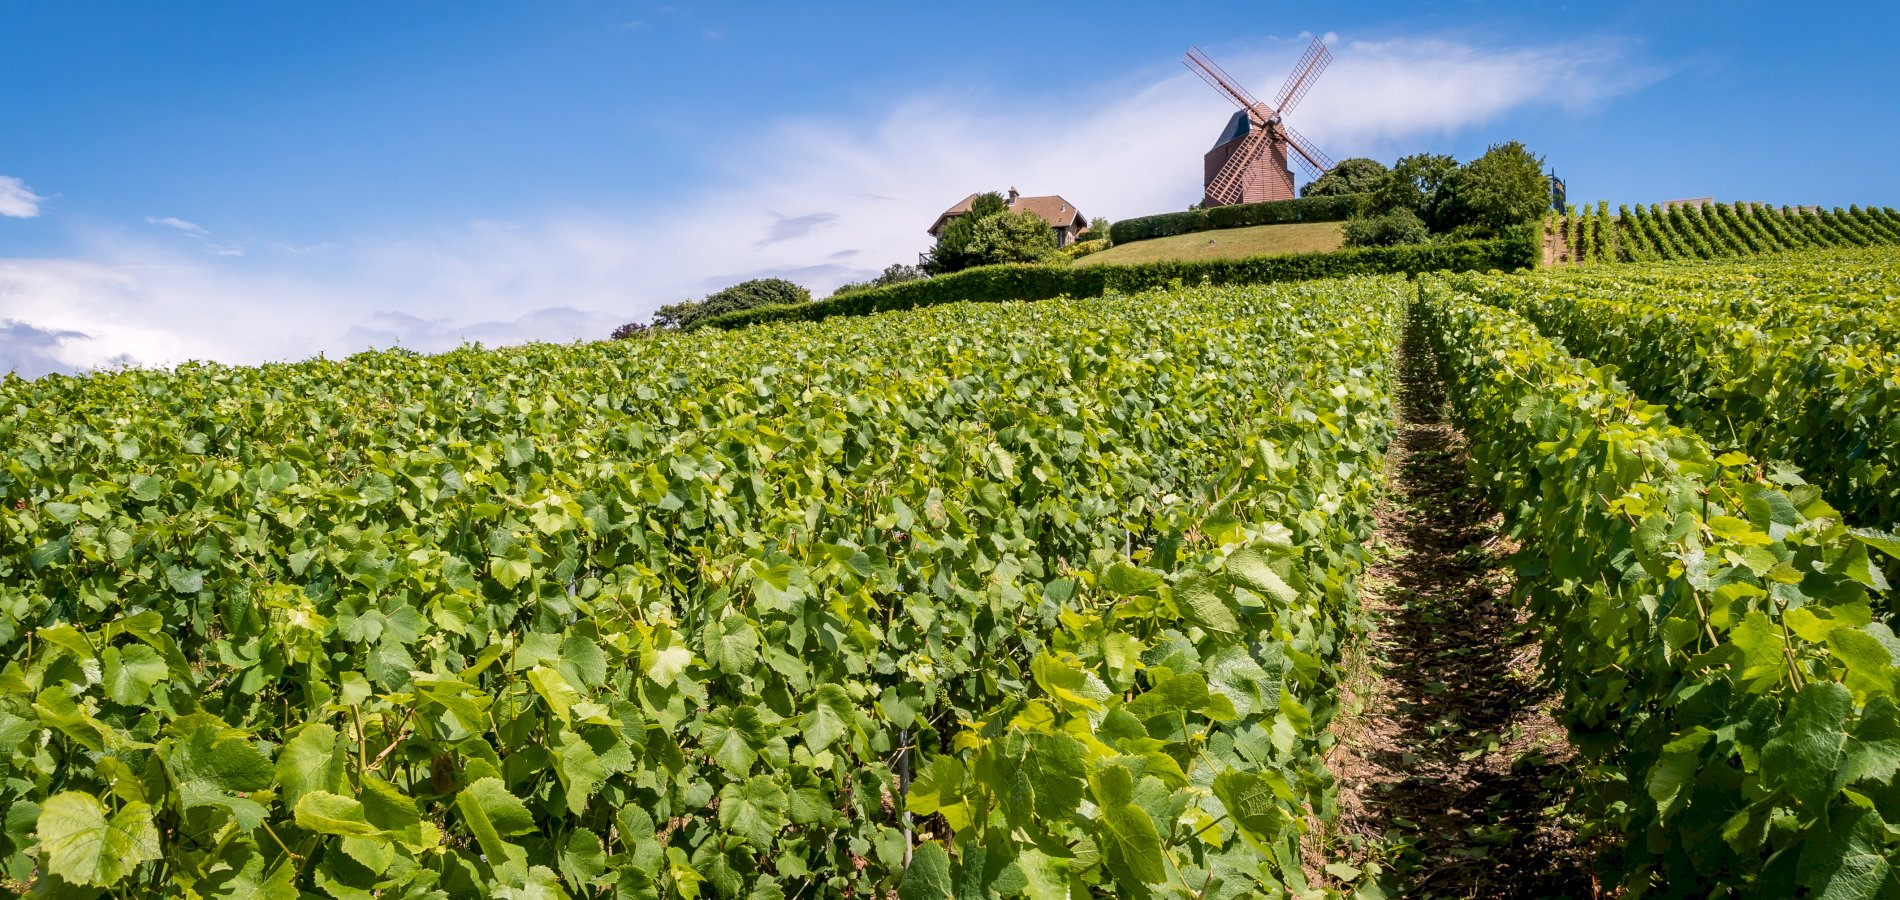 Ophorus Tours - Champagne Day Tour with Tasting: Veuve Clicquot, local wineries, lunch included